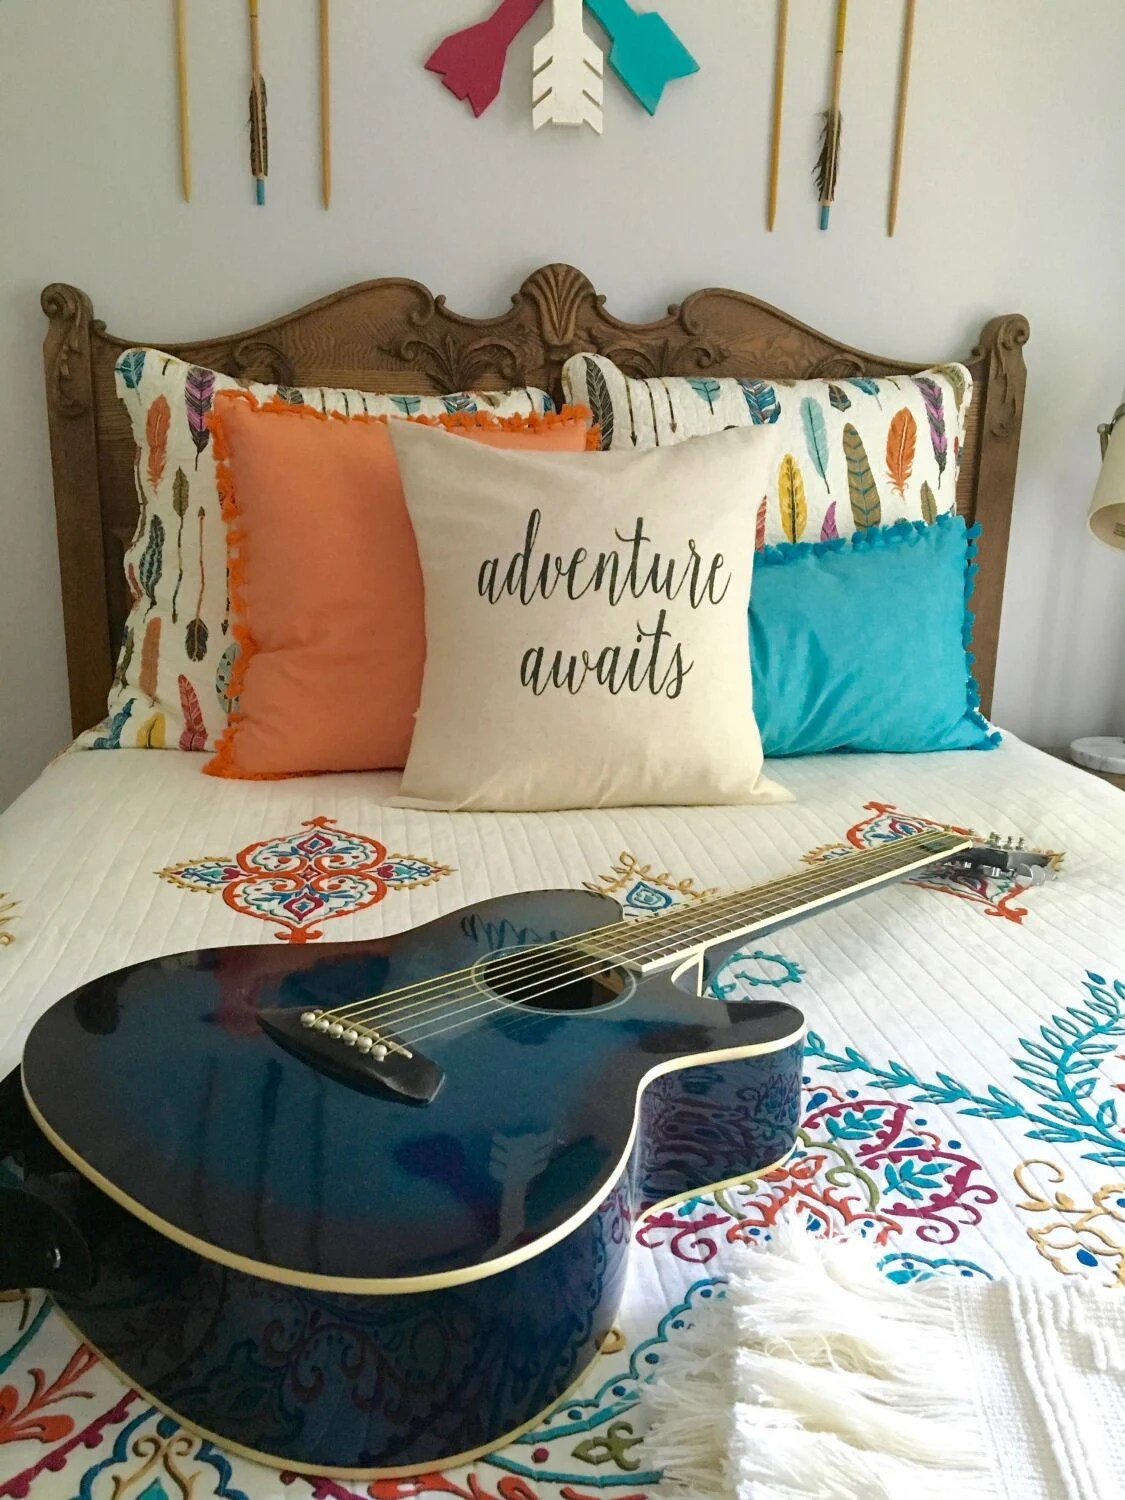 Guitar Decor For Bedroom Boho Chic Teen Girls Room Makeover Adventure Awaits